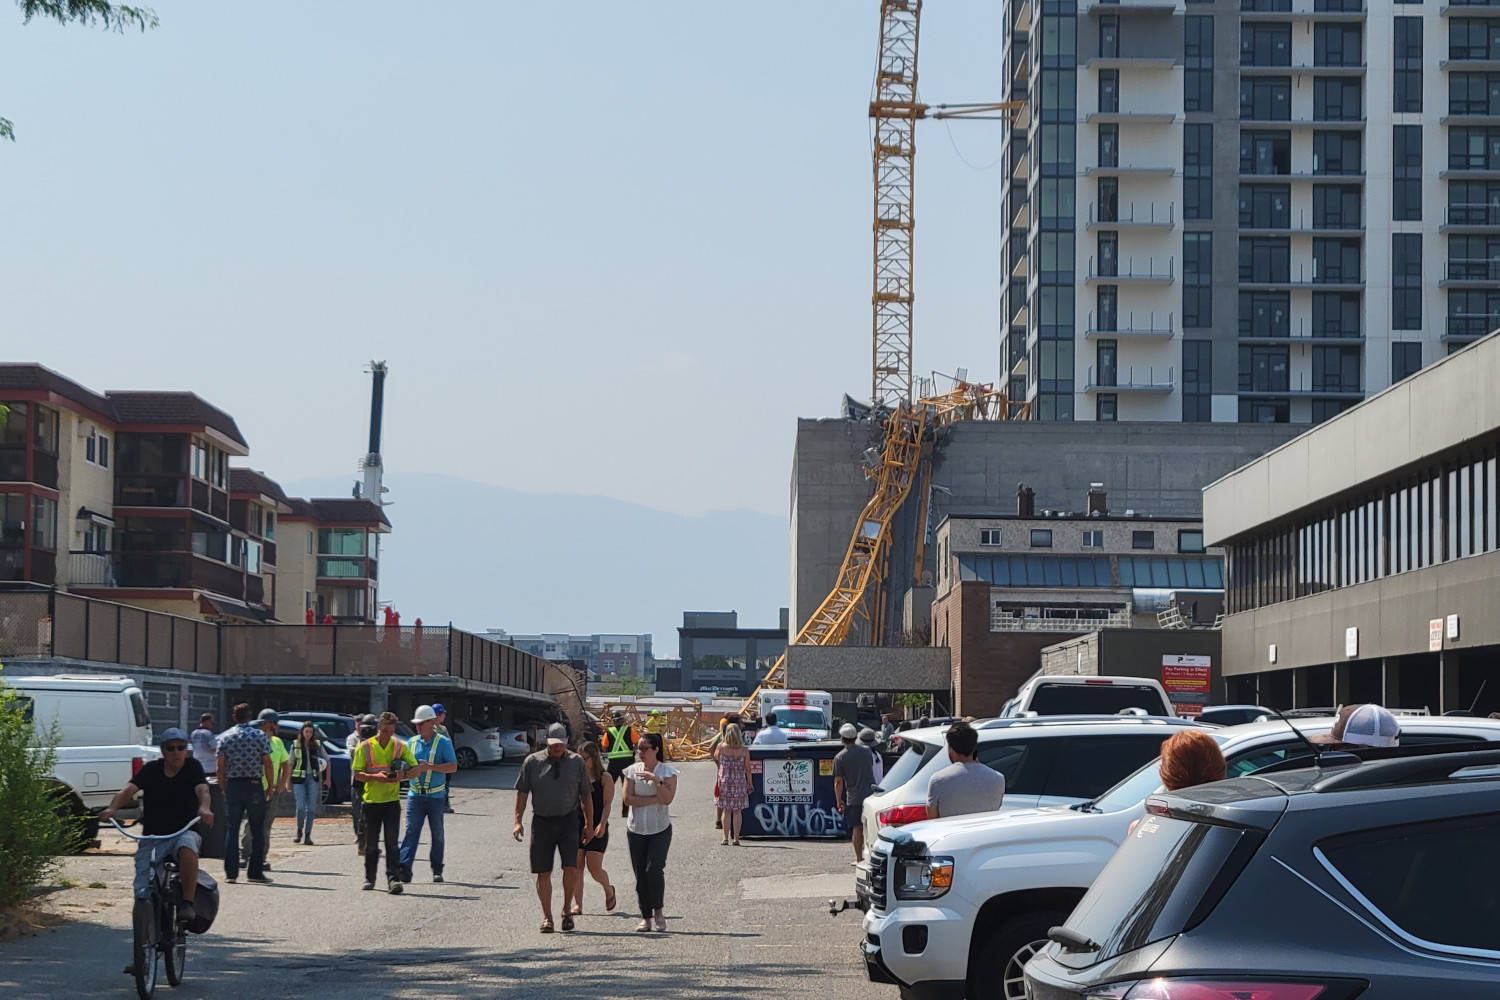 Emergency crews responding to a downtown Kelowna construction site after a crane fell on Monday, July 12. (Michael Rodriguez/Capital News)